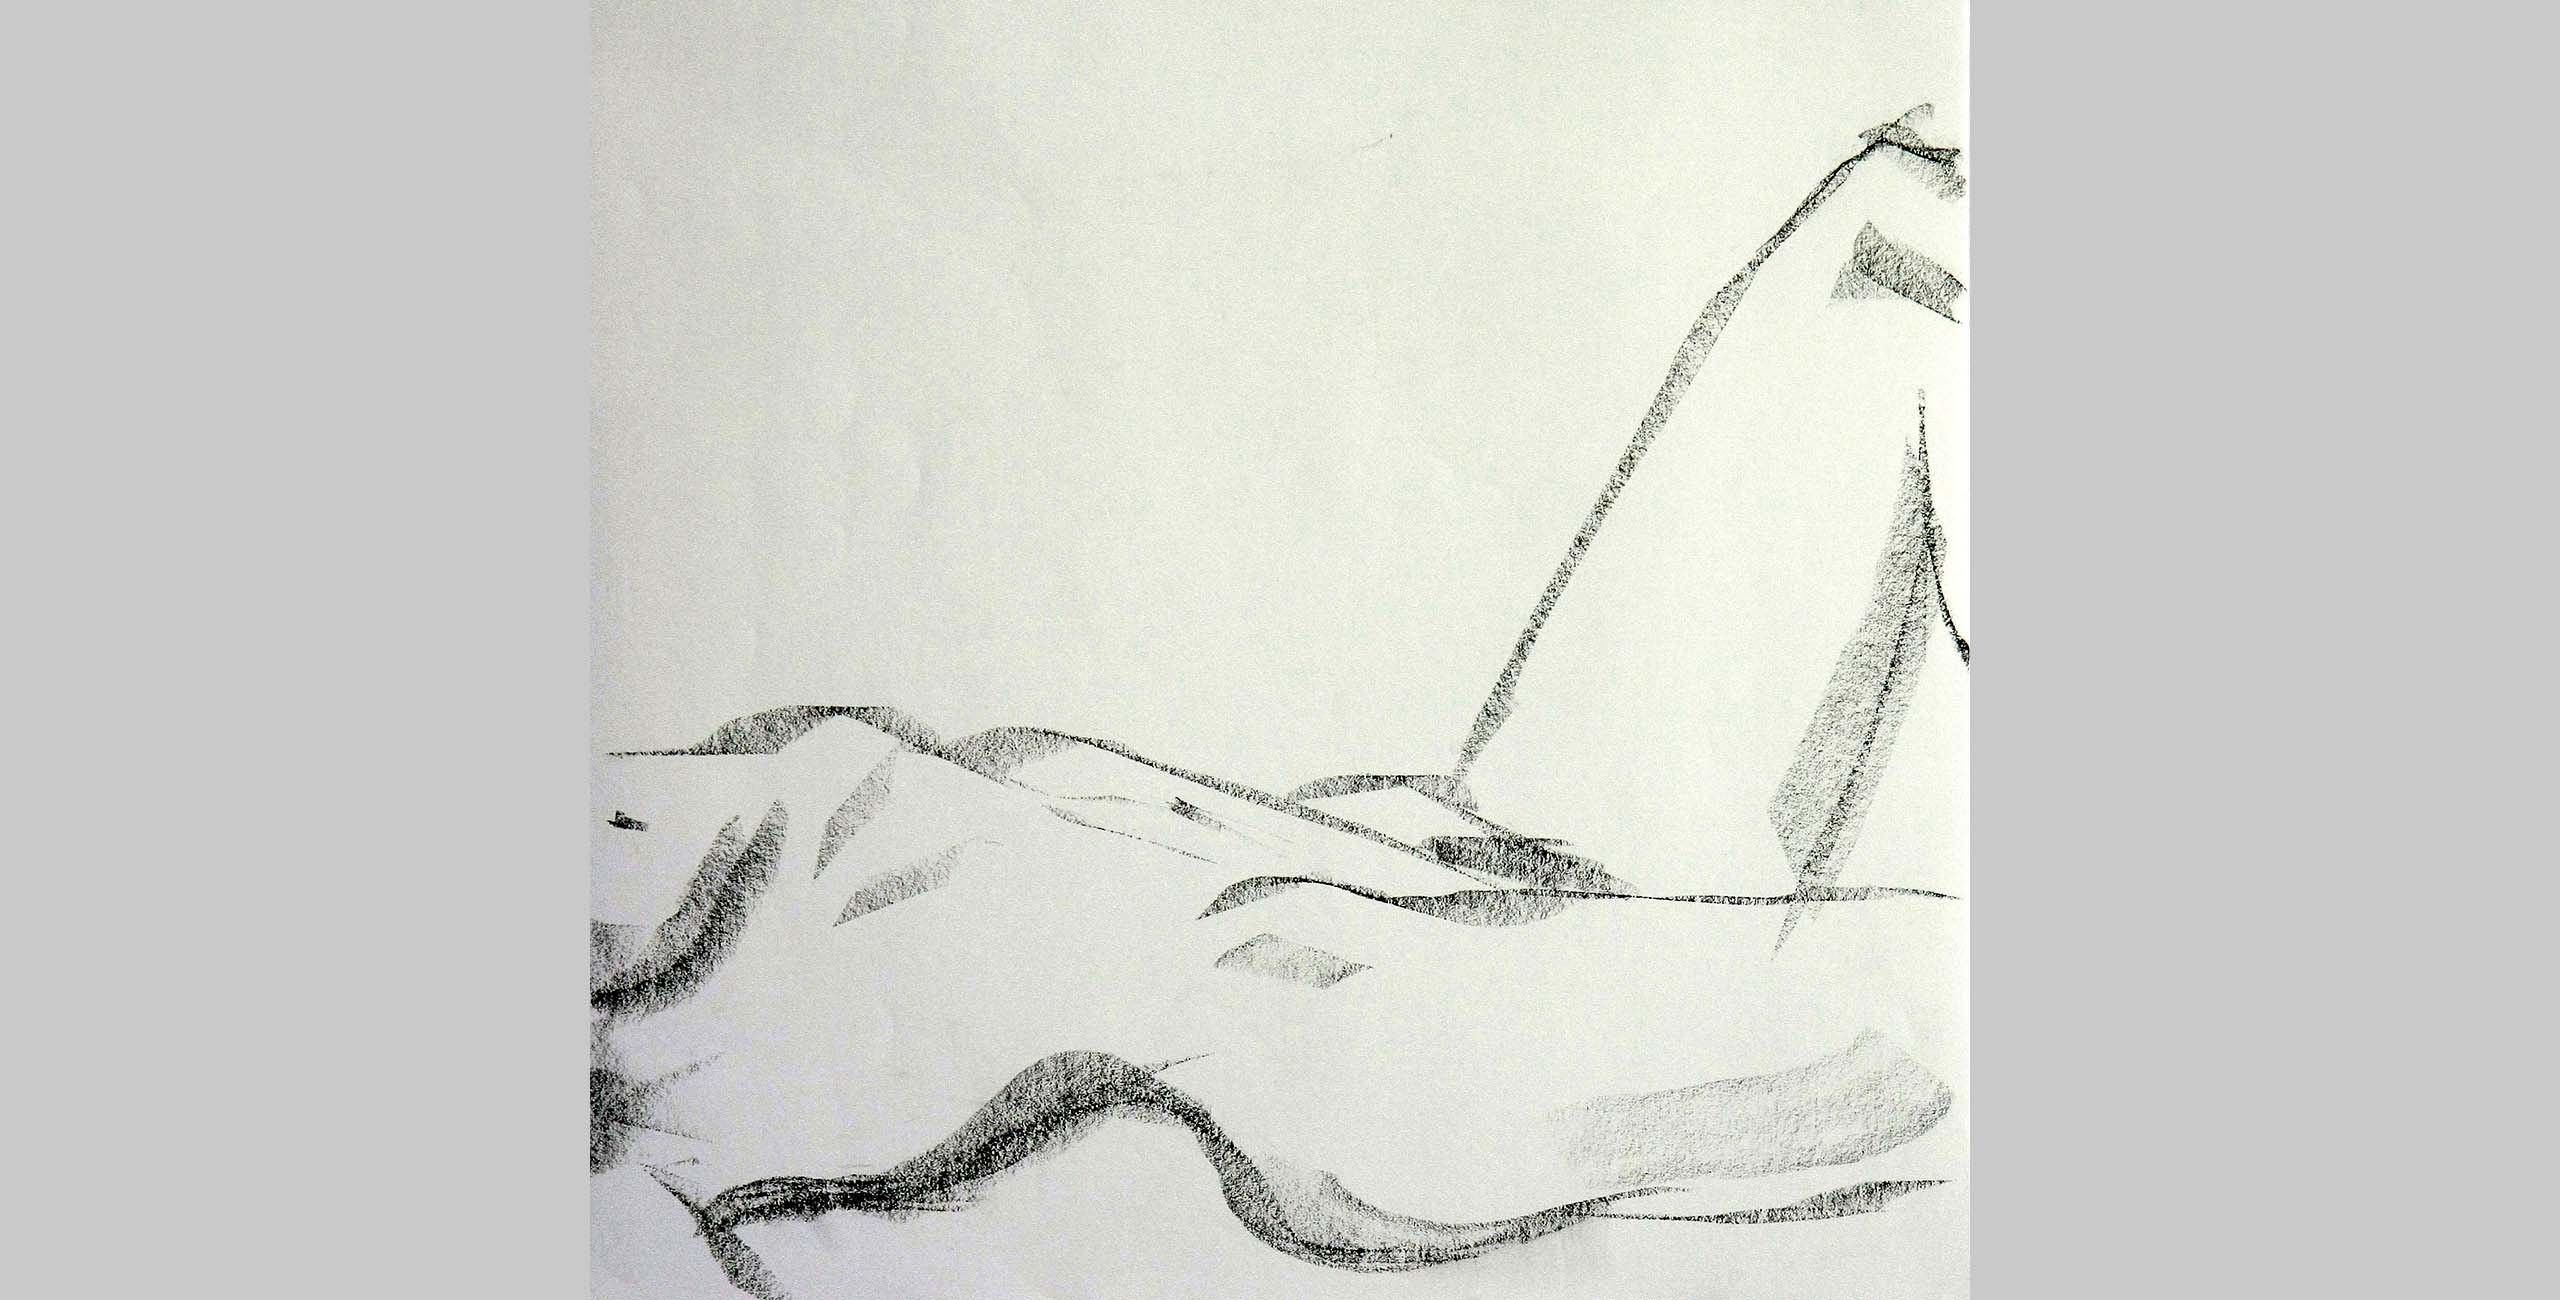 Arching Torso, 2011, charcoal on paper